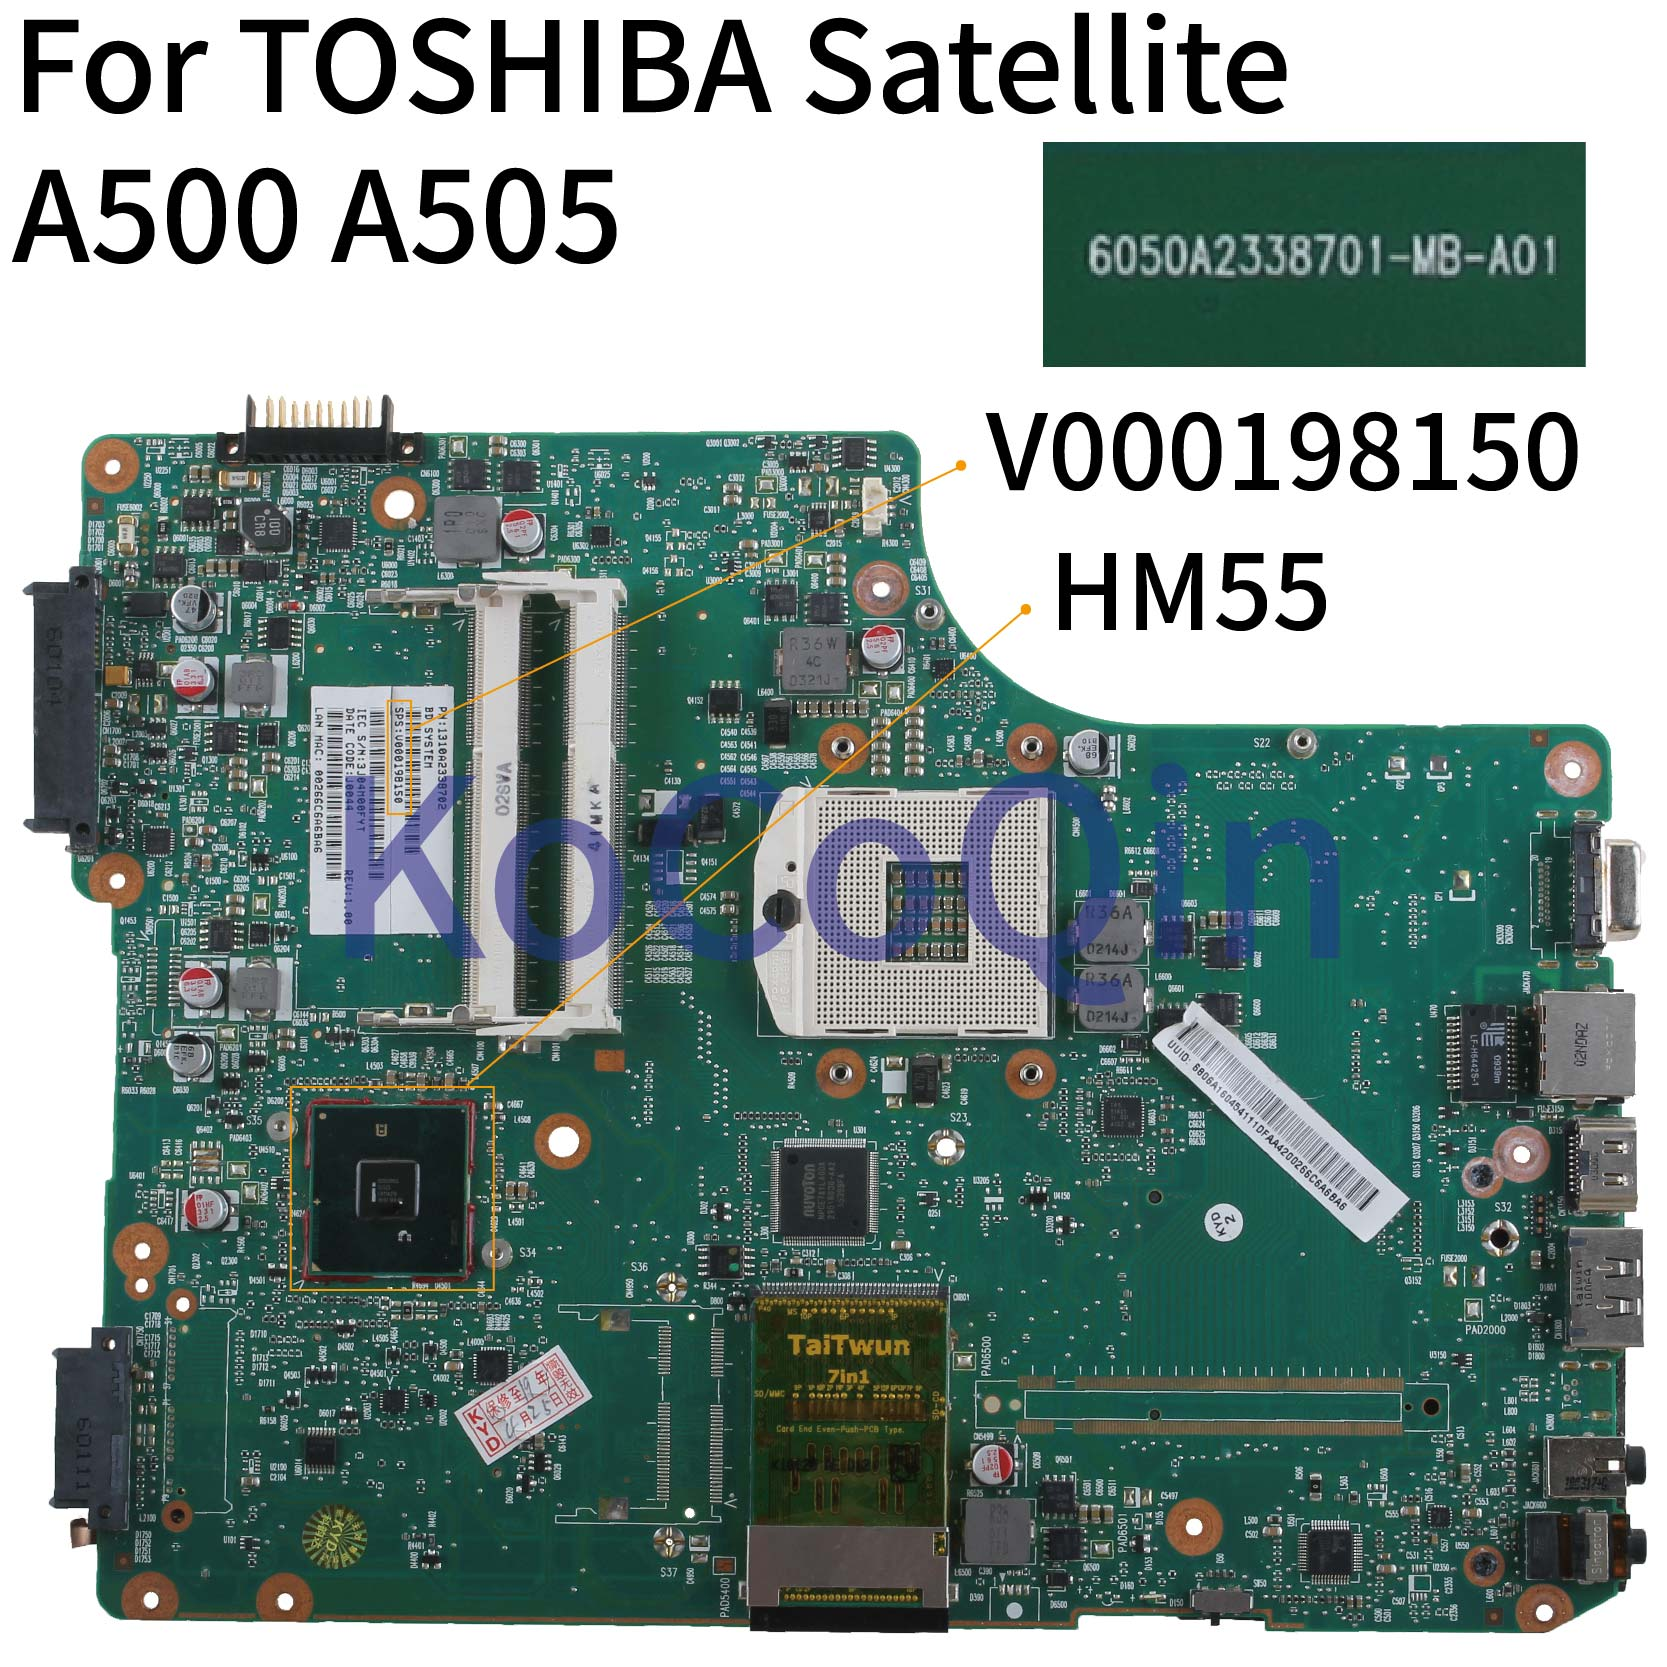 KoCoQin Laptop Motherboard For TOSHIBA Satellite A500 A505 HM55 Mainboard V000198150 6050A2338701-MB-A01